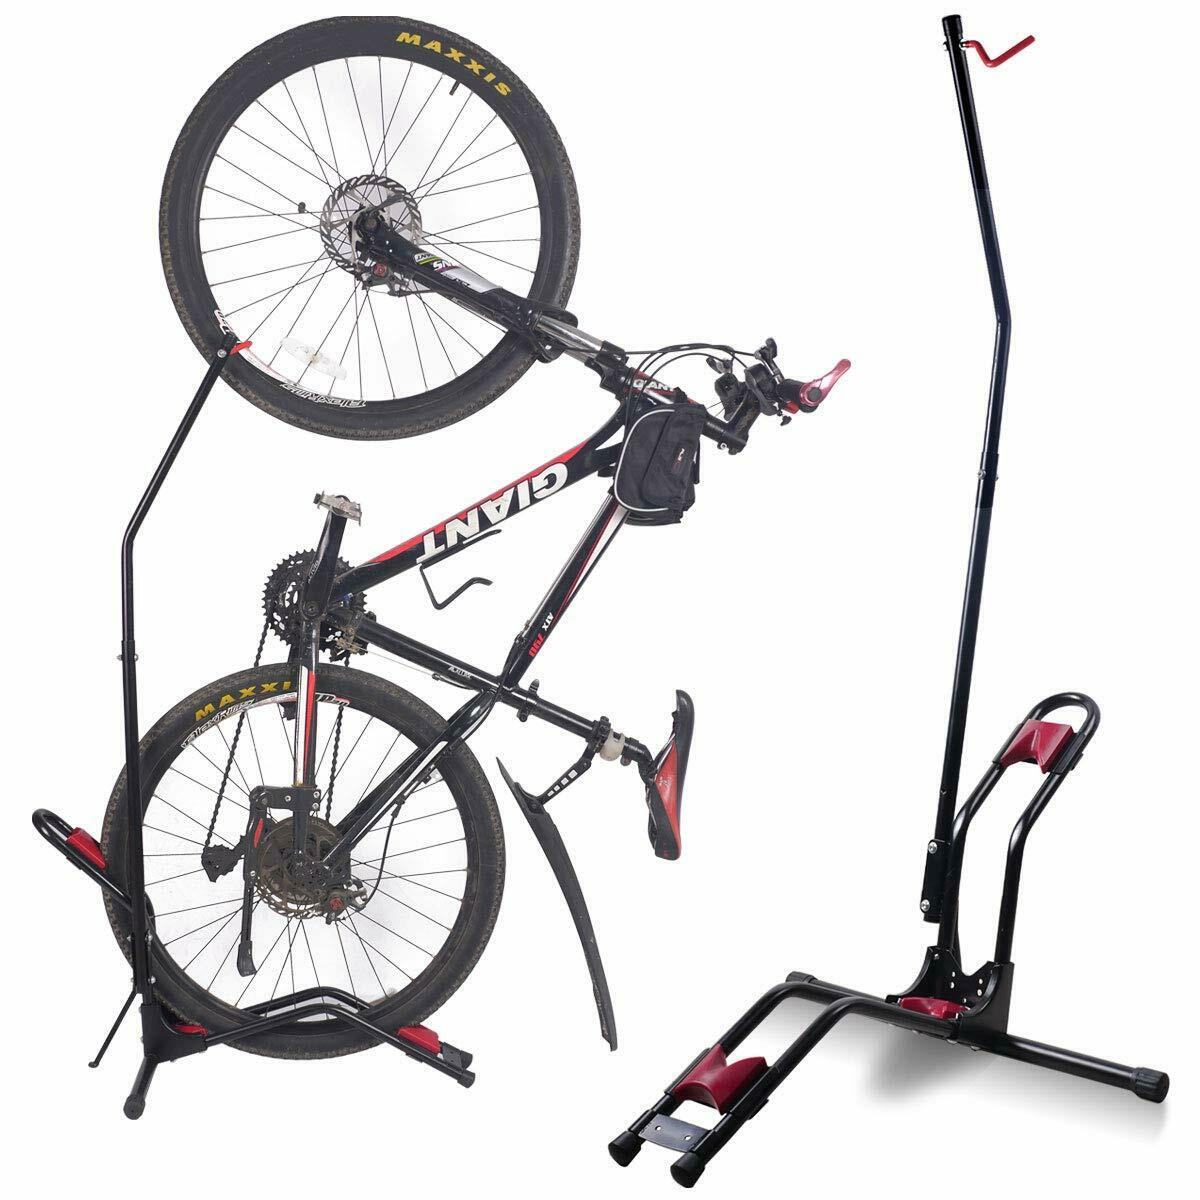 Parking Garage Bike Rack Details About Bike Floor Parking Stand Storage Mountain Bicycle Rack Garage Hanger Wall Mount